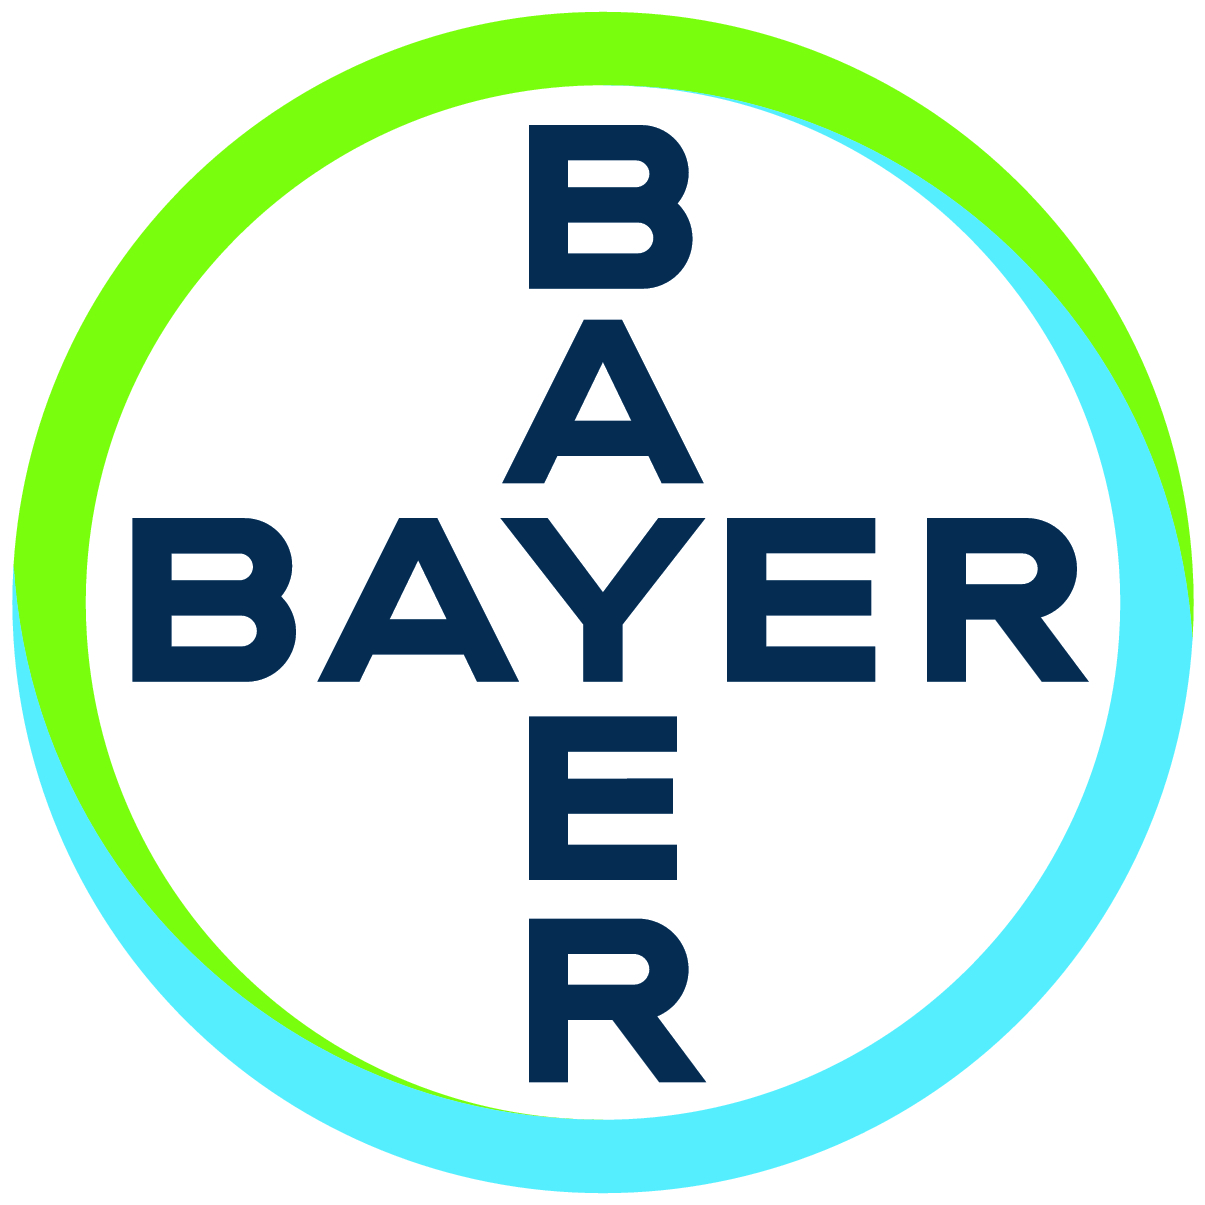 logo of the pesticide company bayer